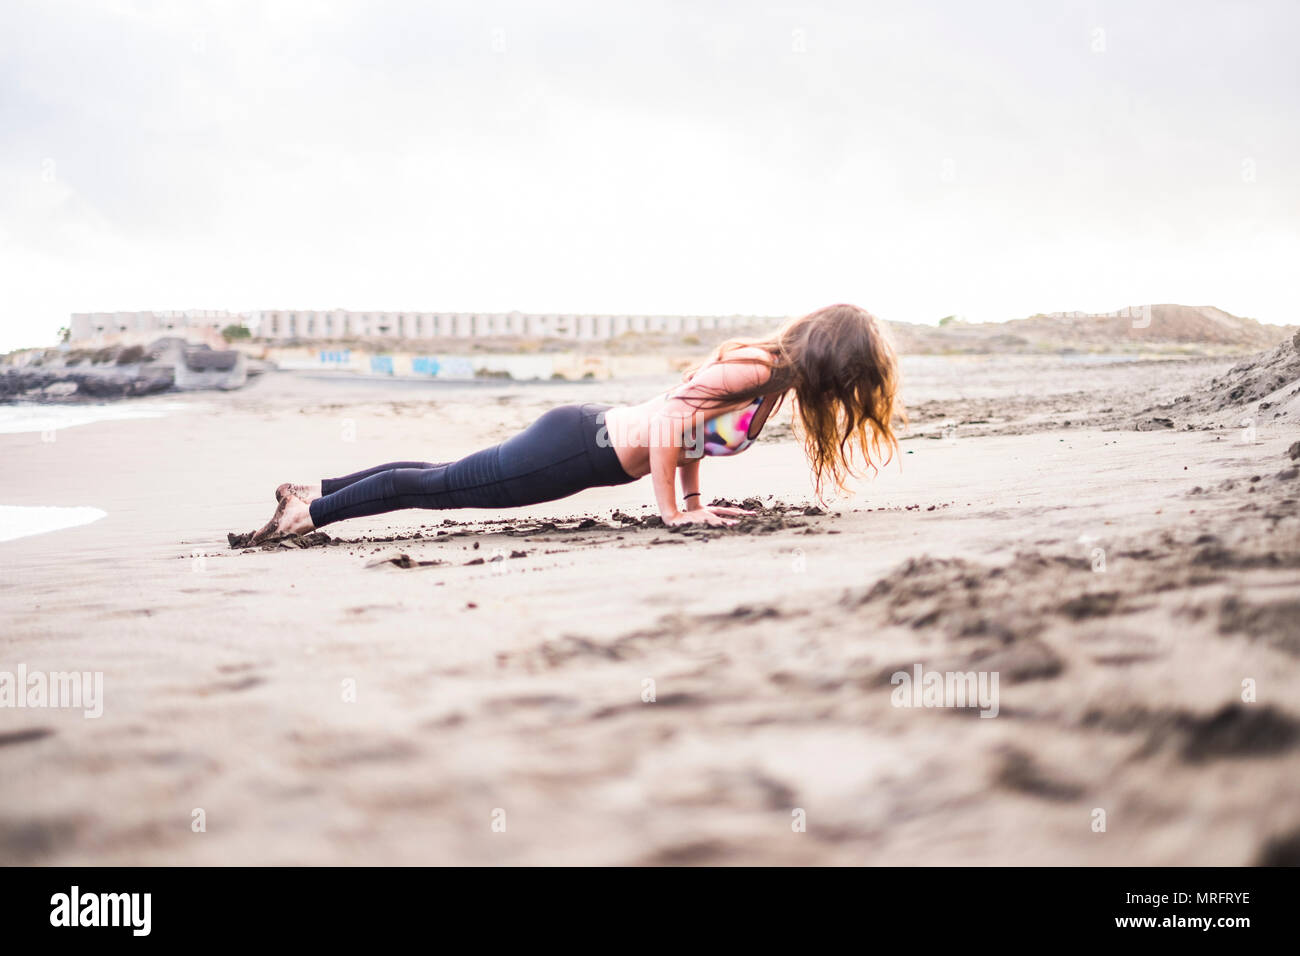 yoga and pilates rest strong position to resist and be hard. nice young lady doing fitness at the beach in outdoor leisure activity. sand and lonely p - Stock Image